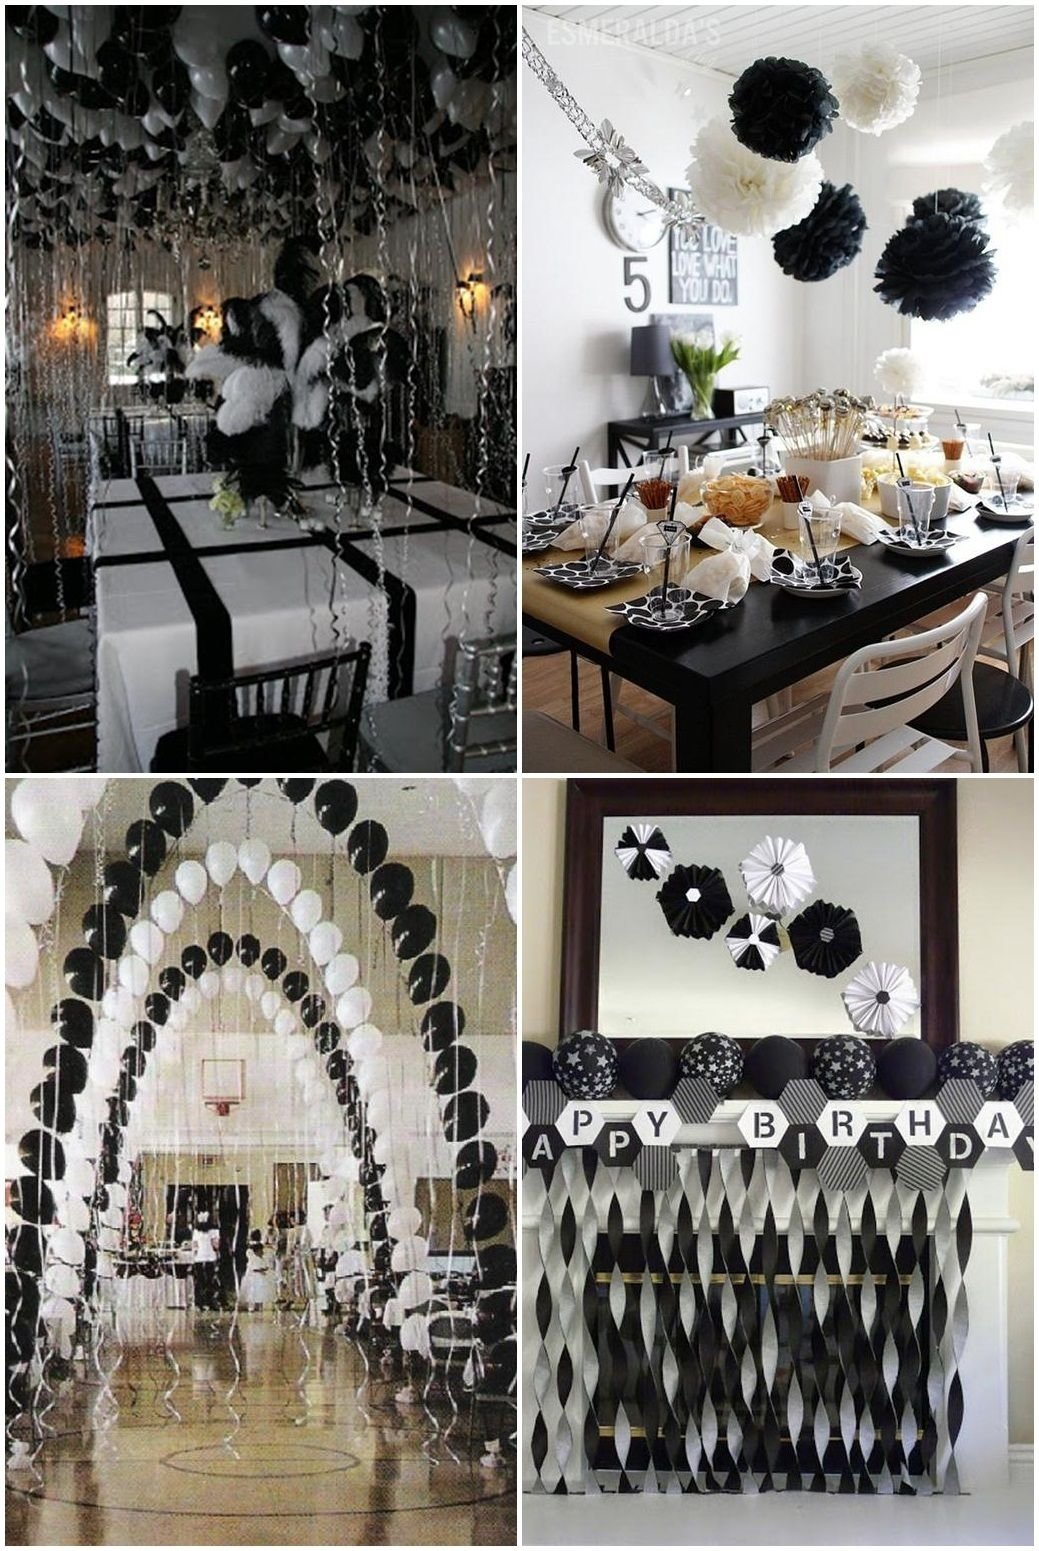 10 Stylish Black And White Party Decoration Ideas black and white graduation party ideas father daughter dance decor 2 2020